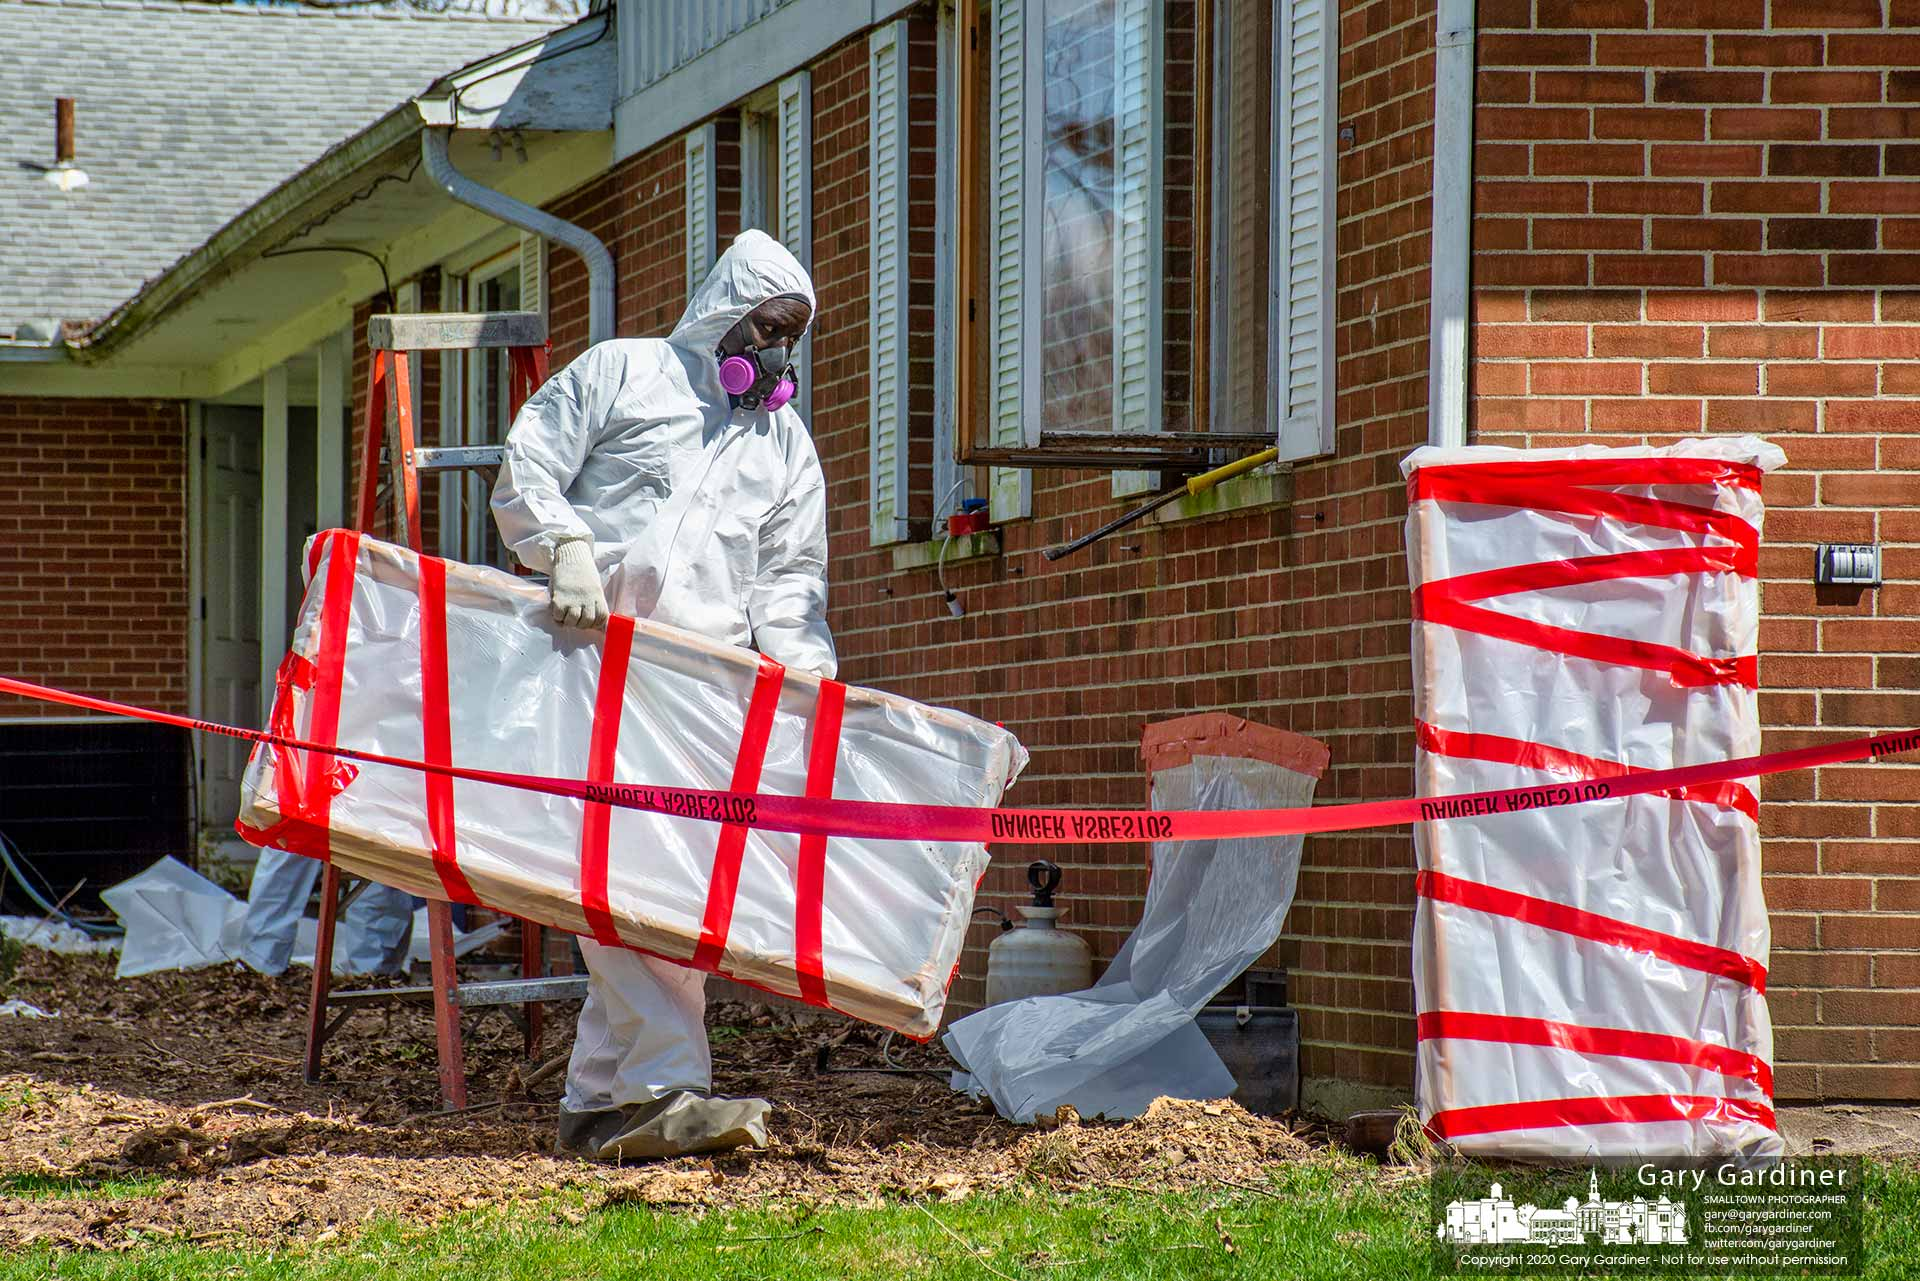 A contractor wearing safety gear removes an asbestos-laden window wrapped in plastic from the old McVay home on Hempstead where the Westerville parks department will demolish the building and party house to make way for a new park. My Final Photo for April 2, 2020.